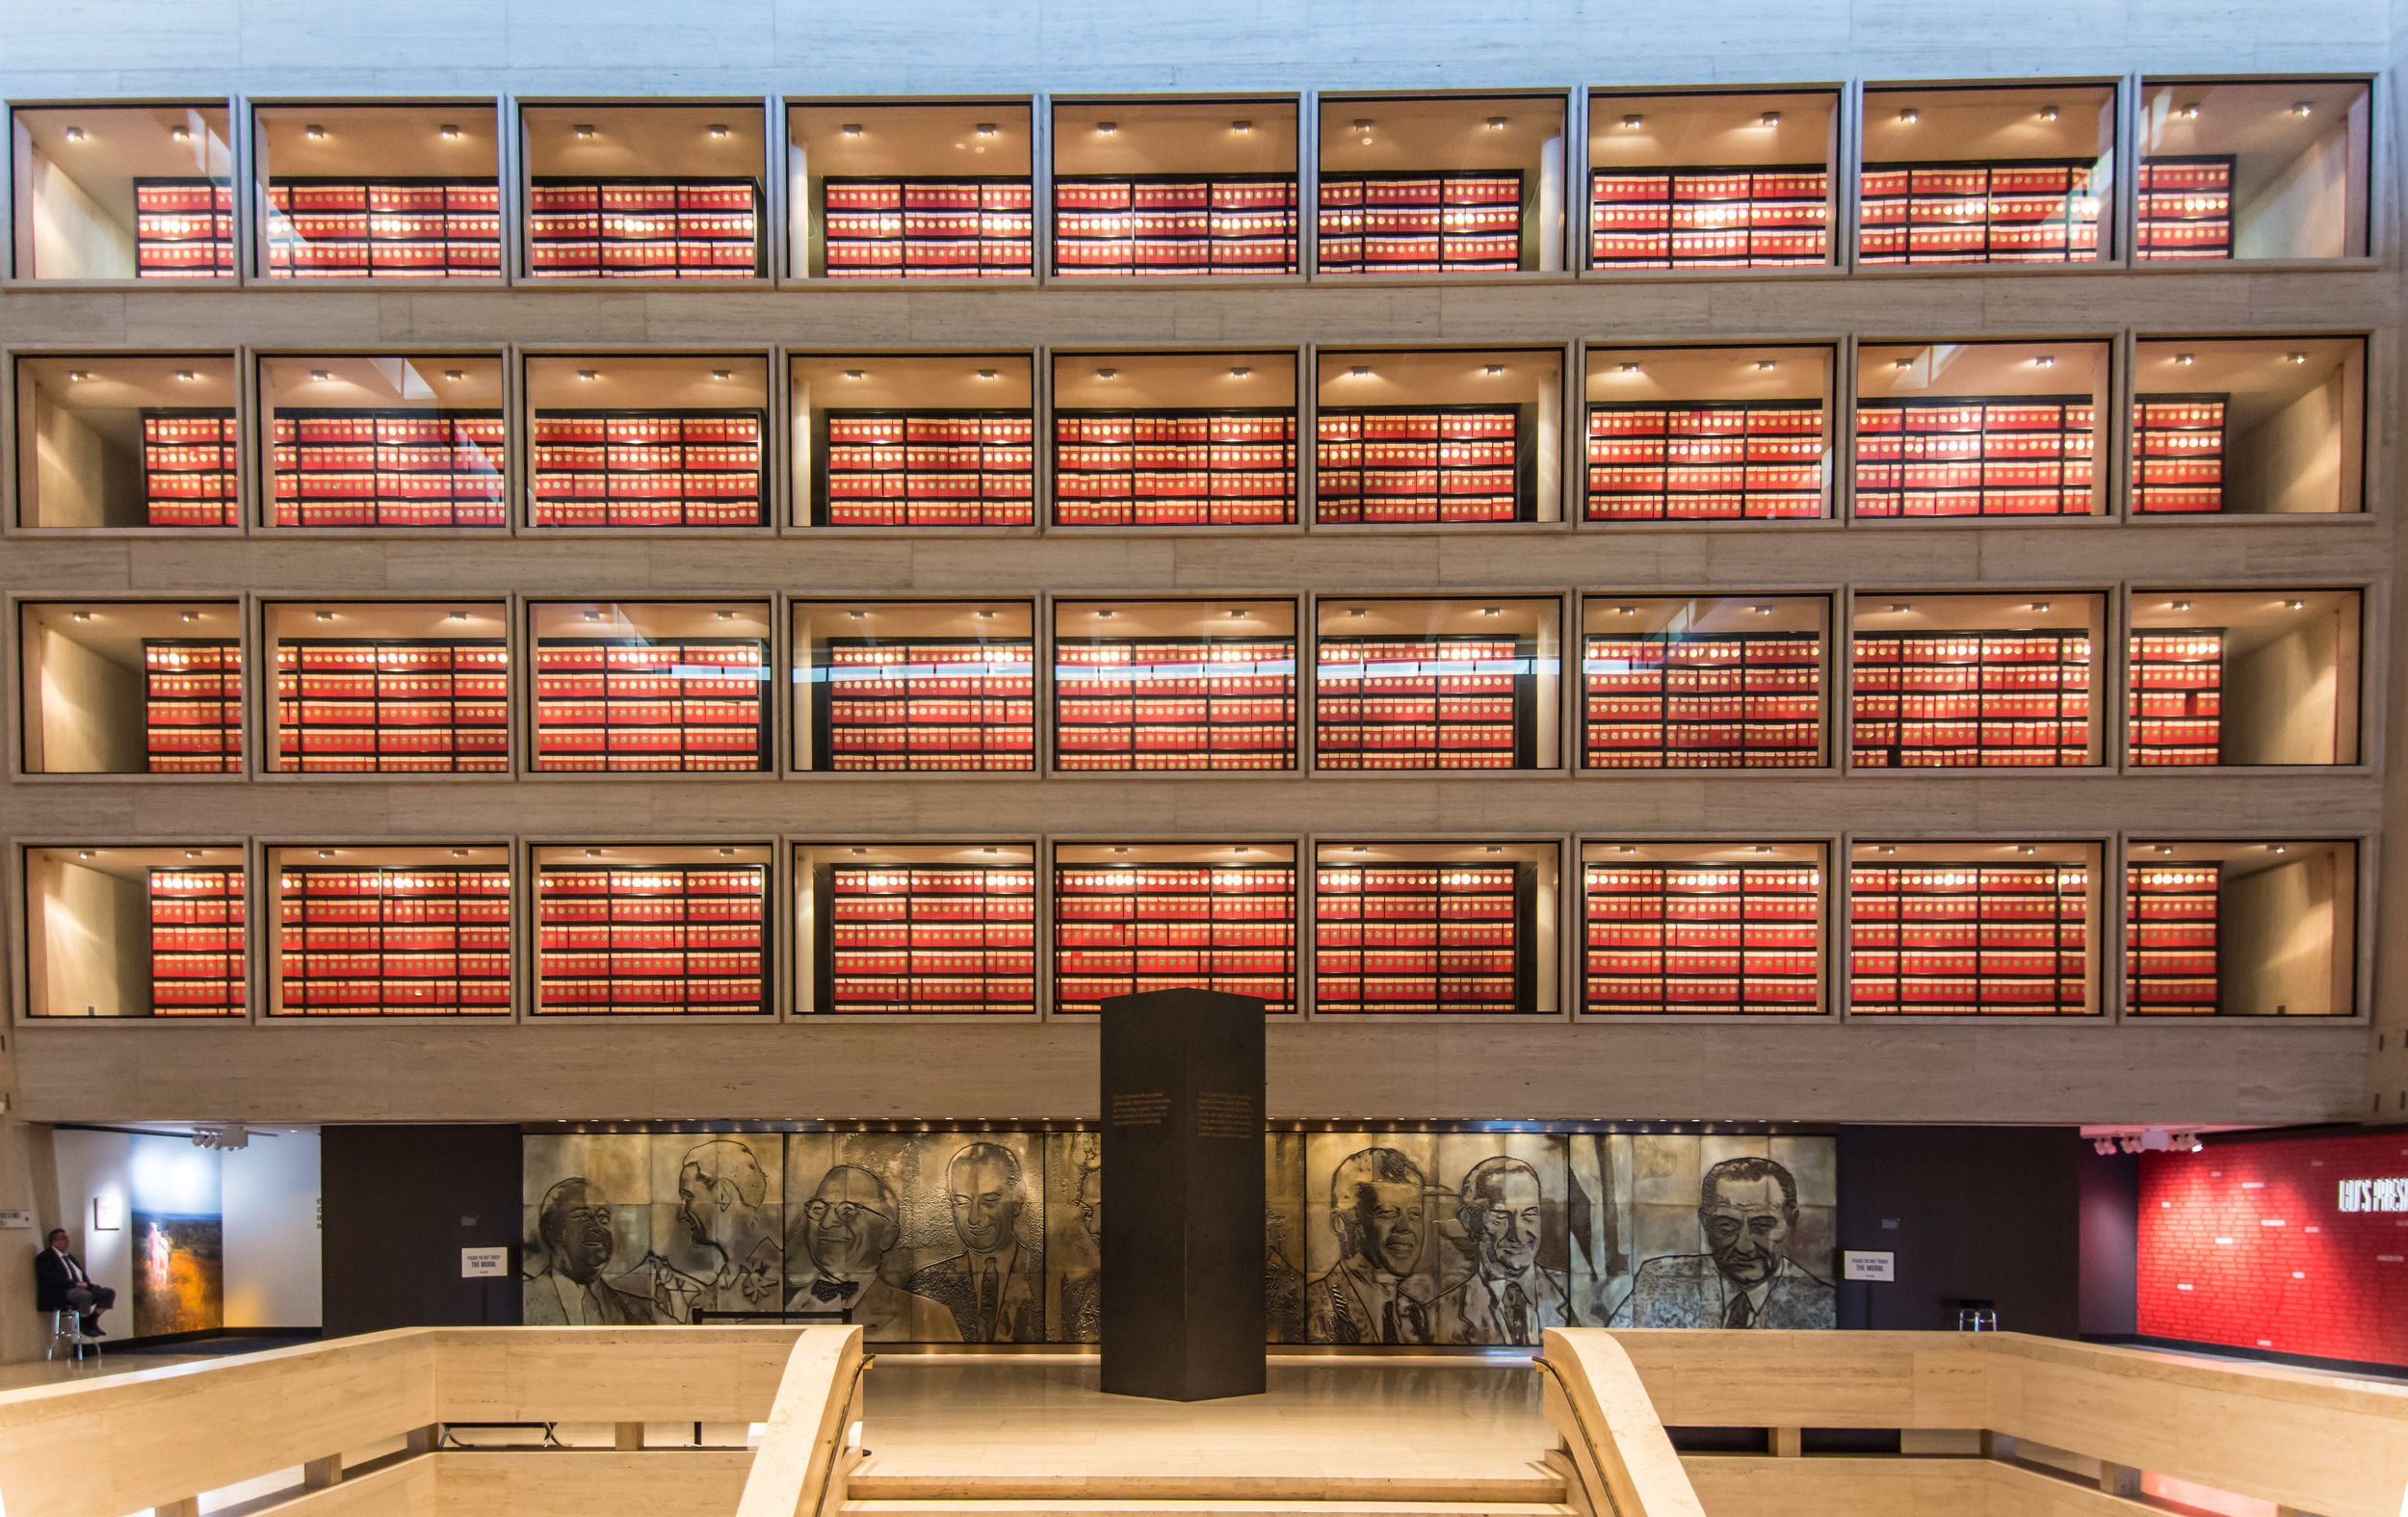 The 'Library' part of the LBJ Library. Tens of thousands of documents, pictures, notes and files, all open to the public. Because it's ours. Just like the National Parks.